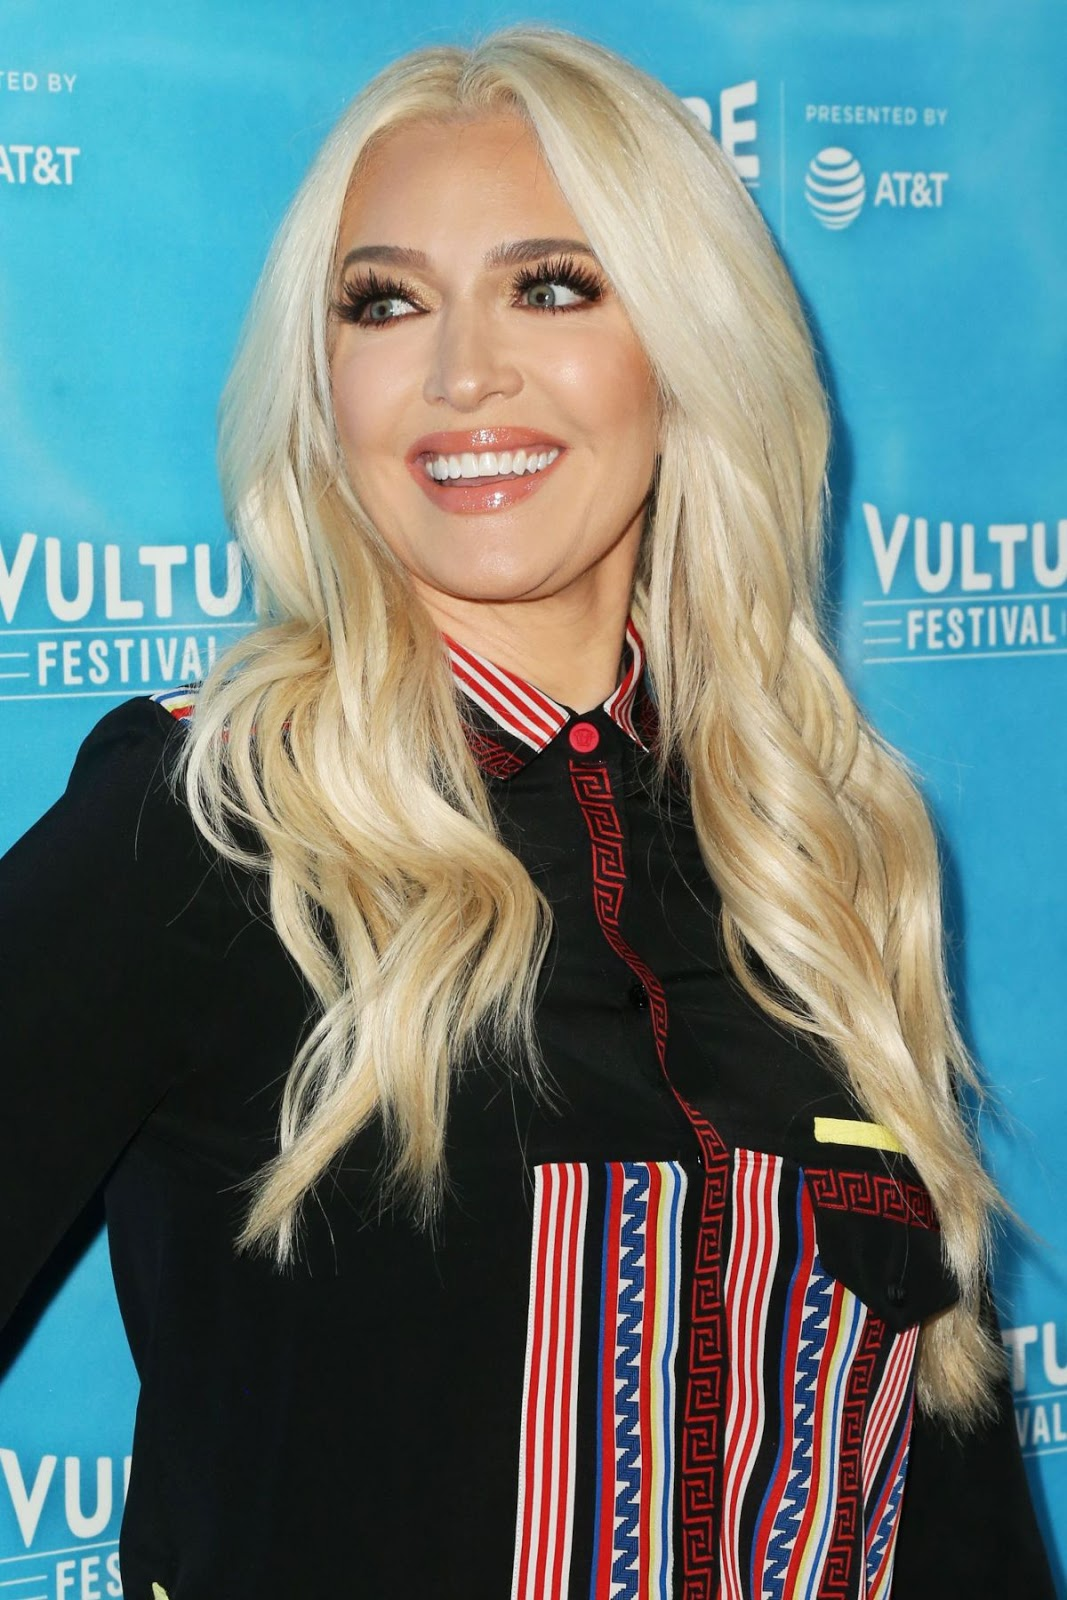 Photos of Erika Jayne at Vulture Festival's It's xxpen$ive to be Erika Jayne in Hollywood